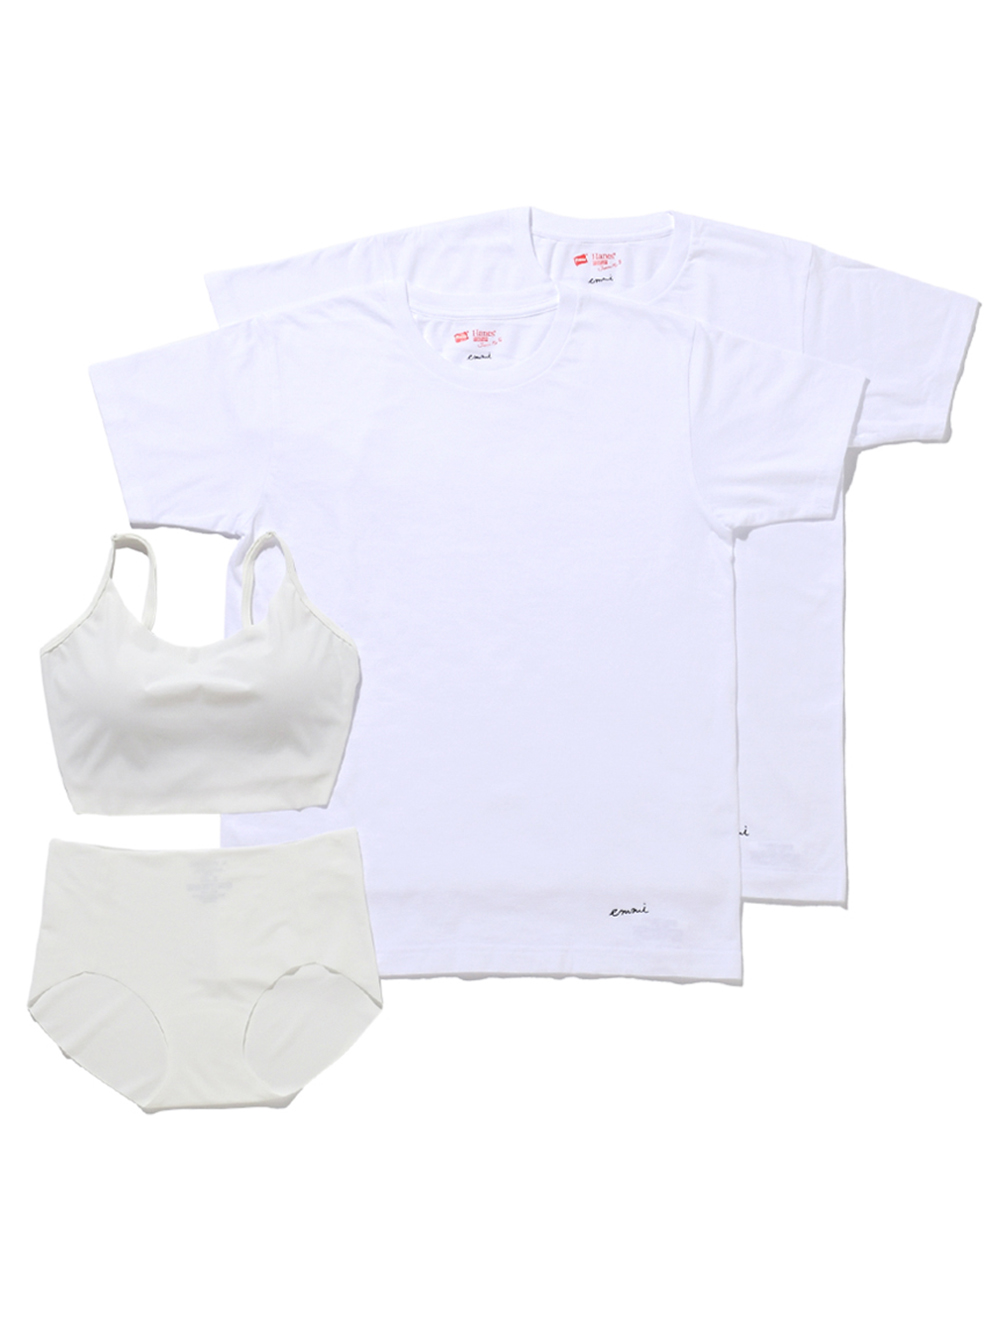 #STAY HOME SELECT INNER PACK(WHT-0)